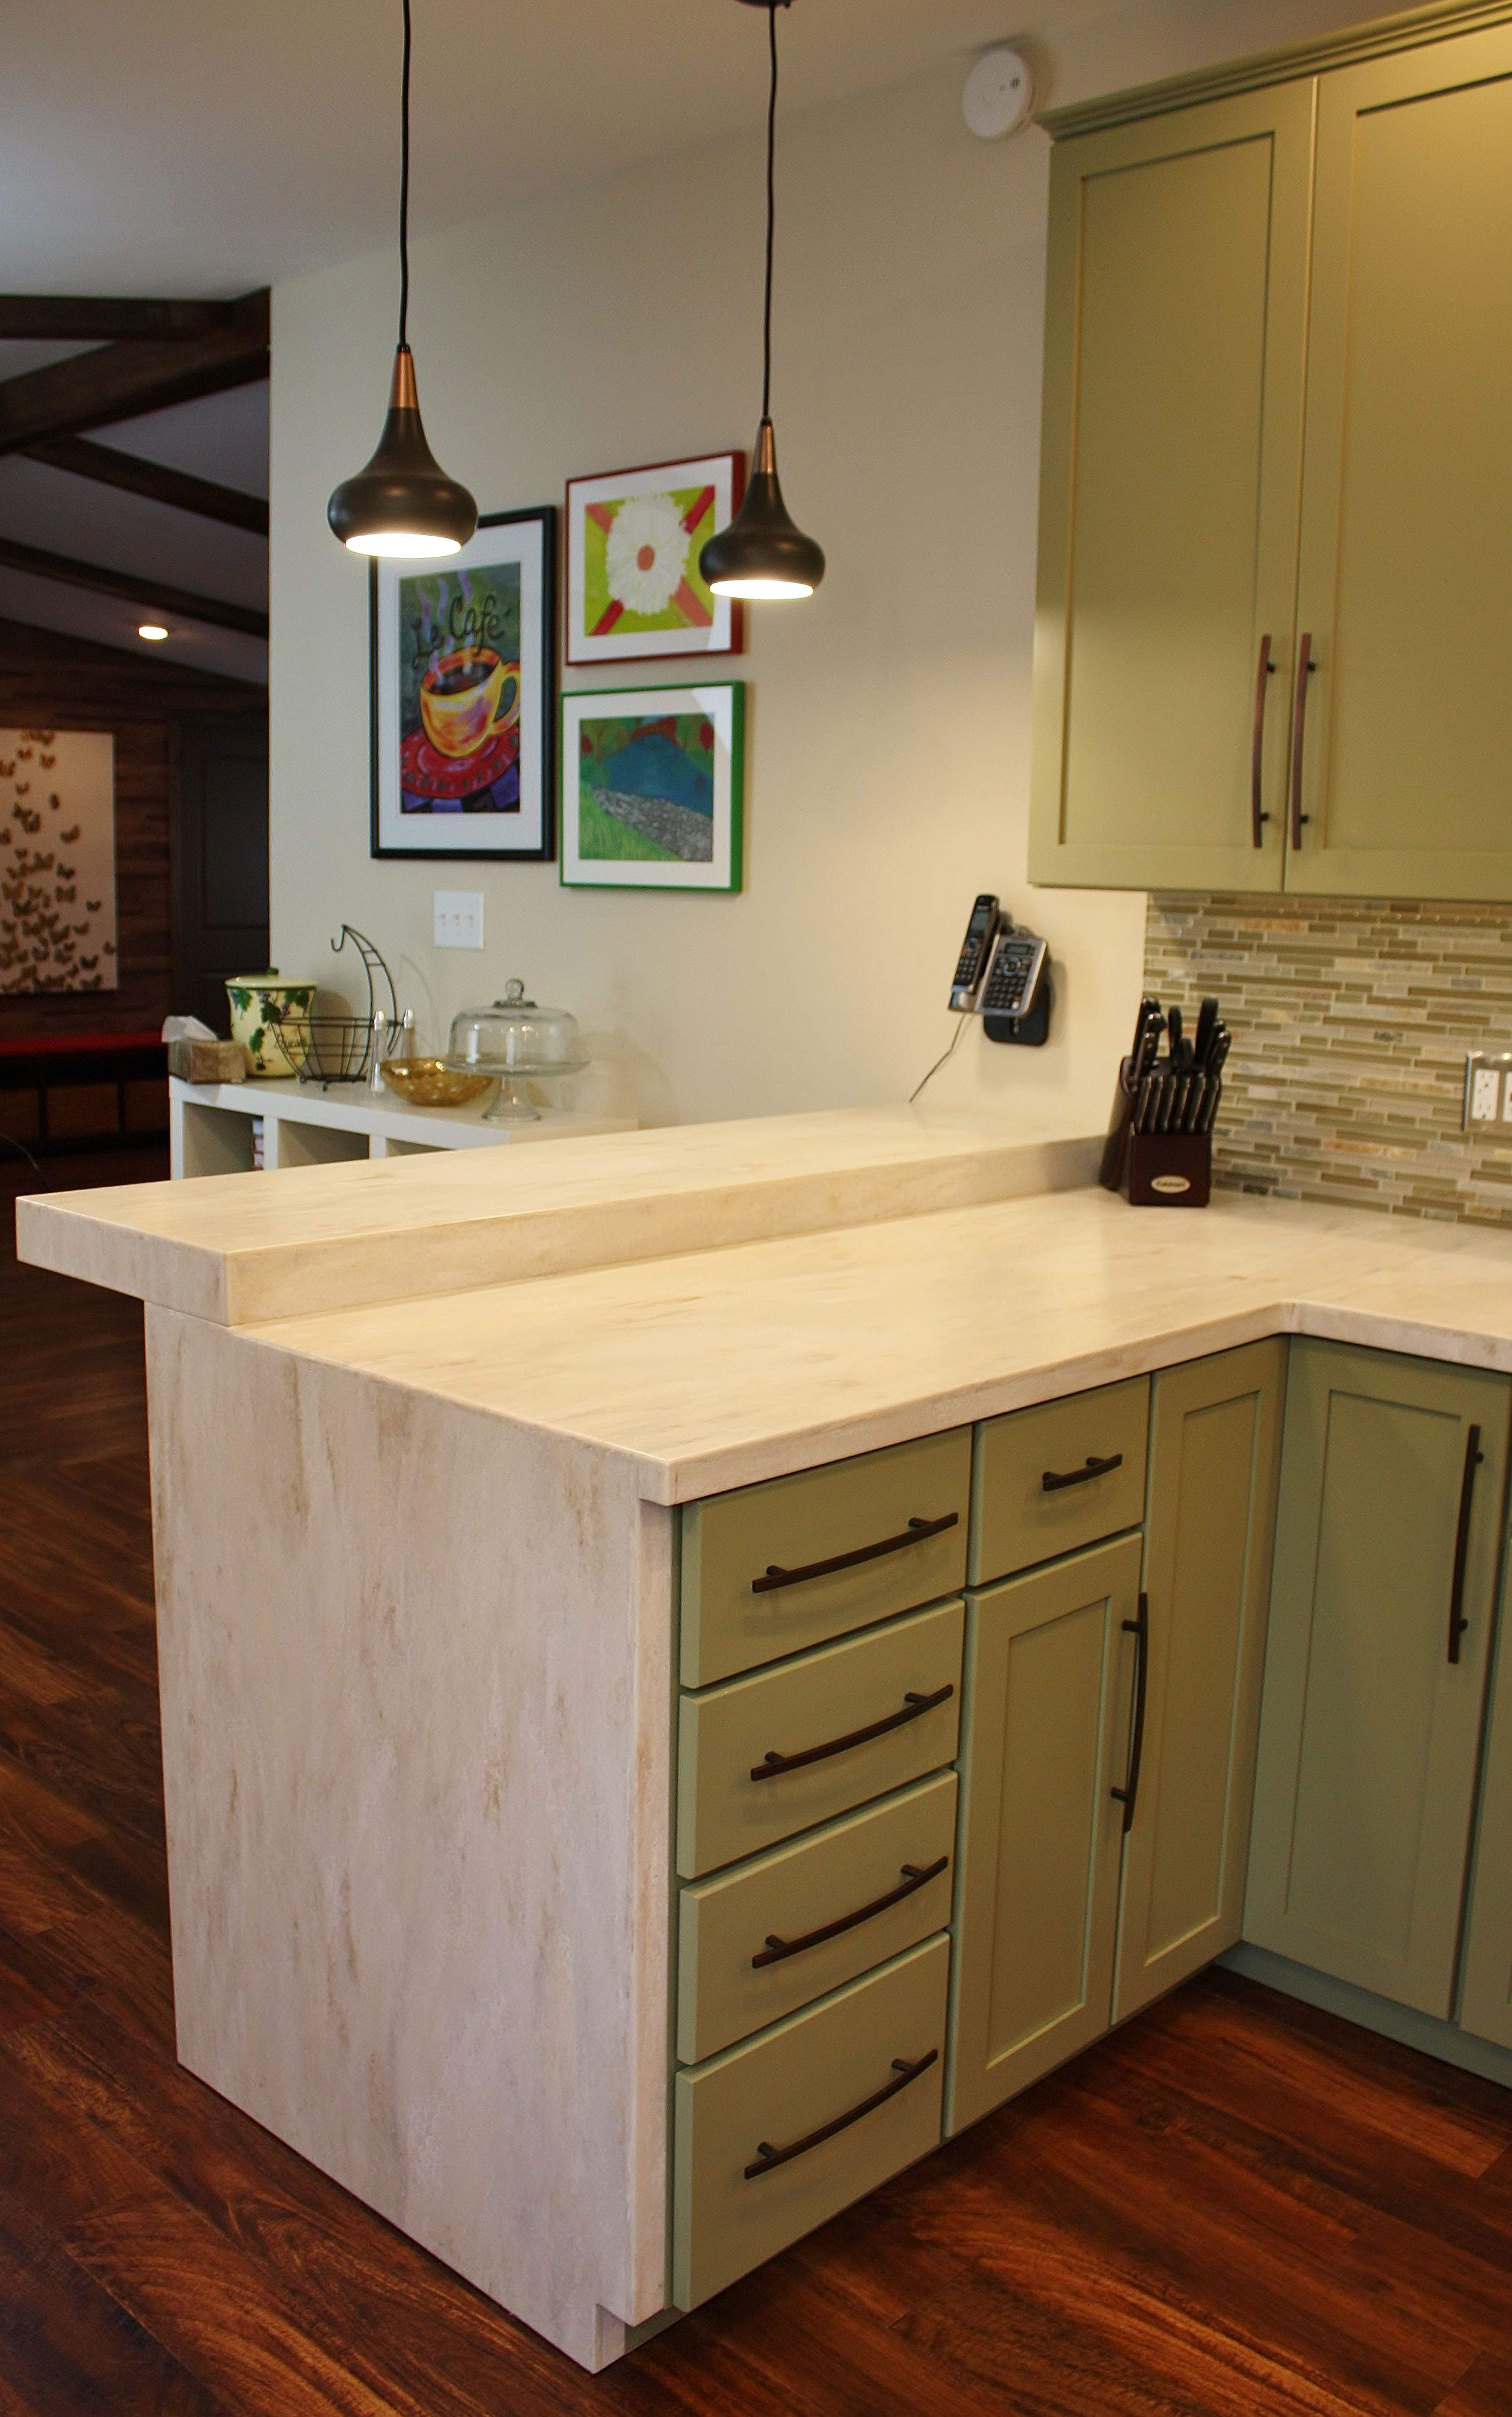 Solid Surface Countertops Utah Holiday Kitchen Seattle Shaker Cabinets Corian